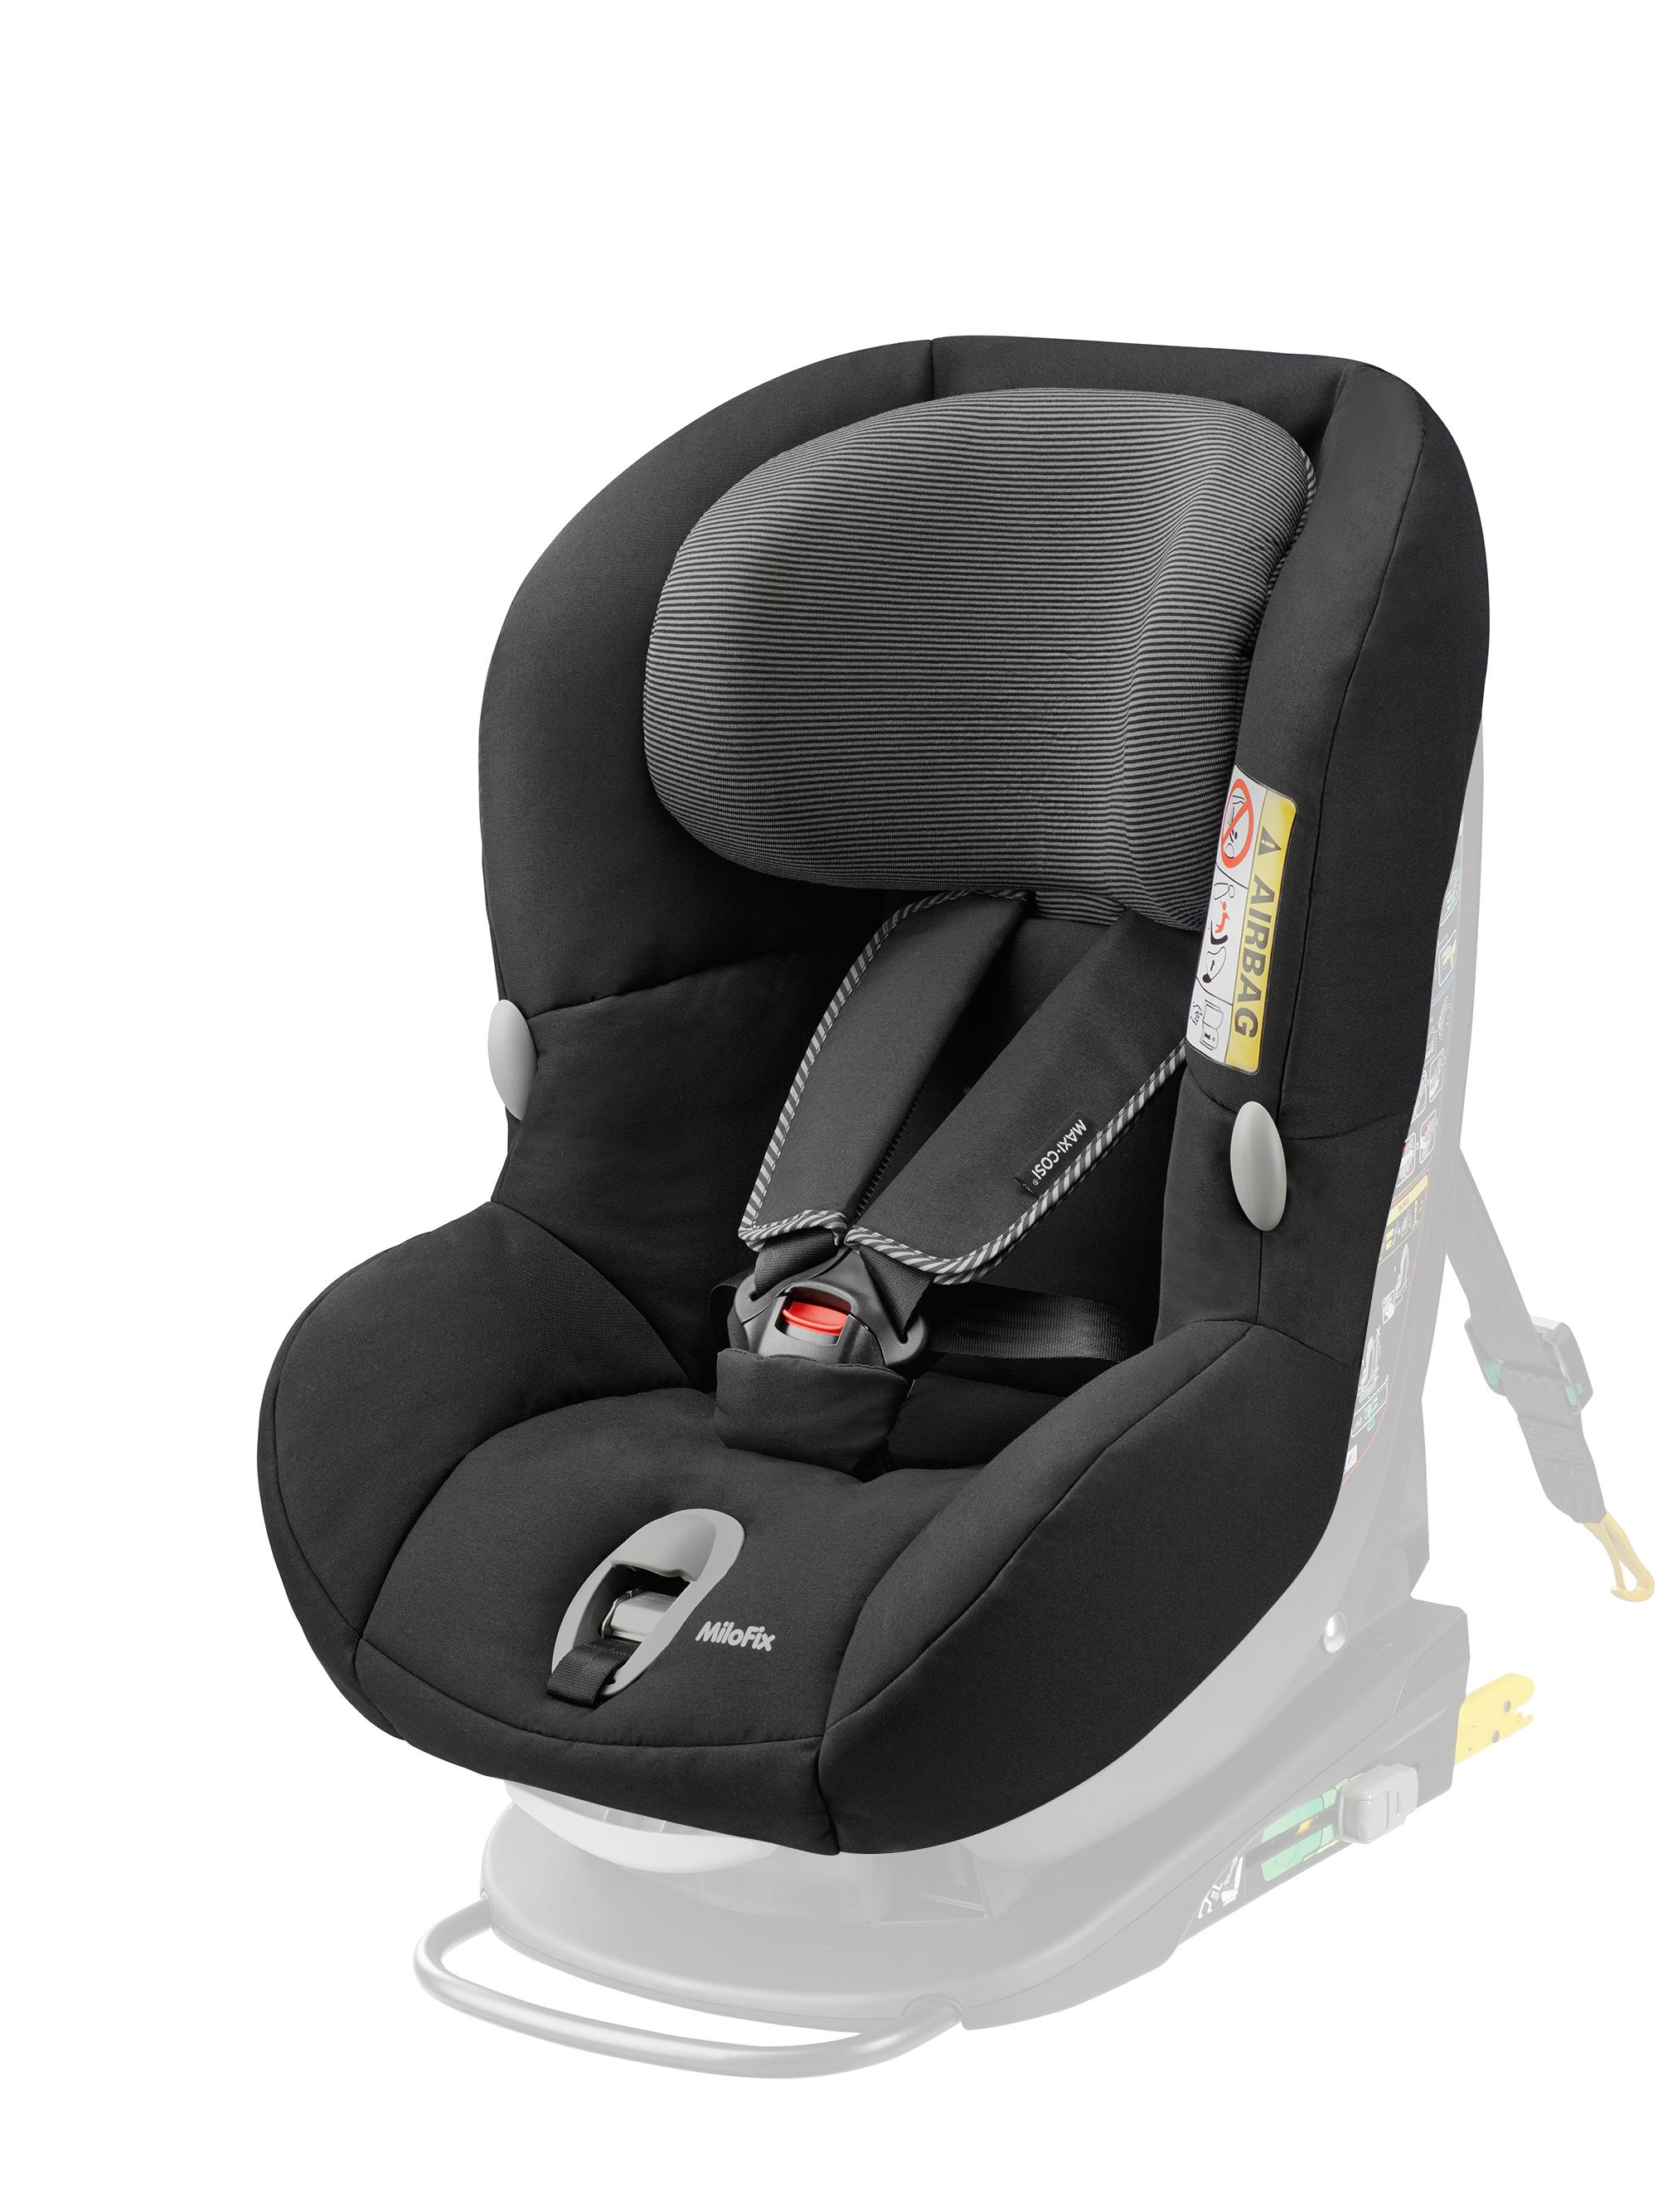 maxi cosi milofix car seat replacement cover black raven baby. Black Bedroom Furniture Sets. Home Design Ideas